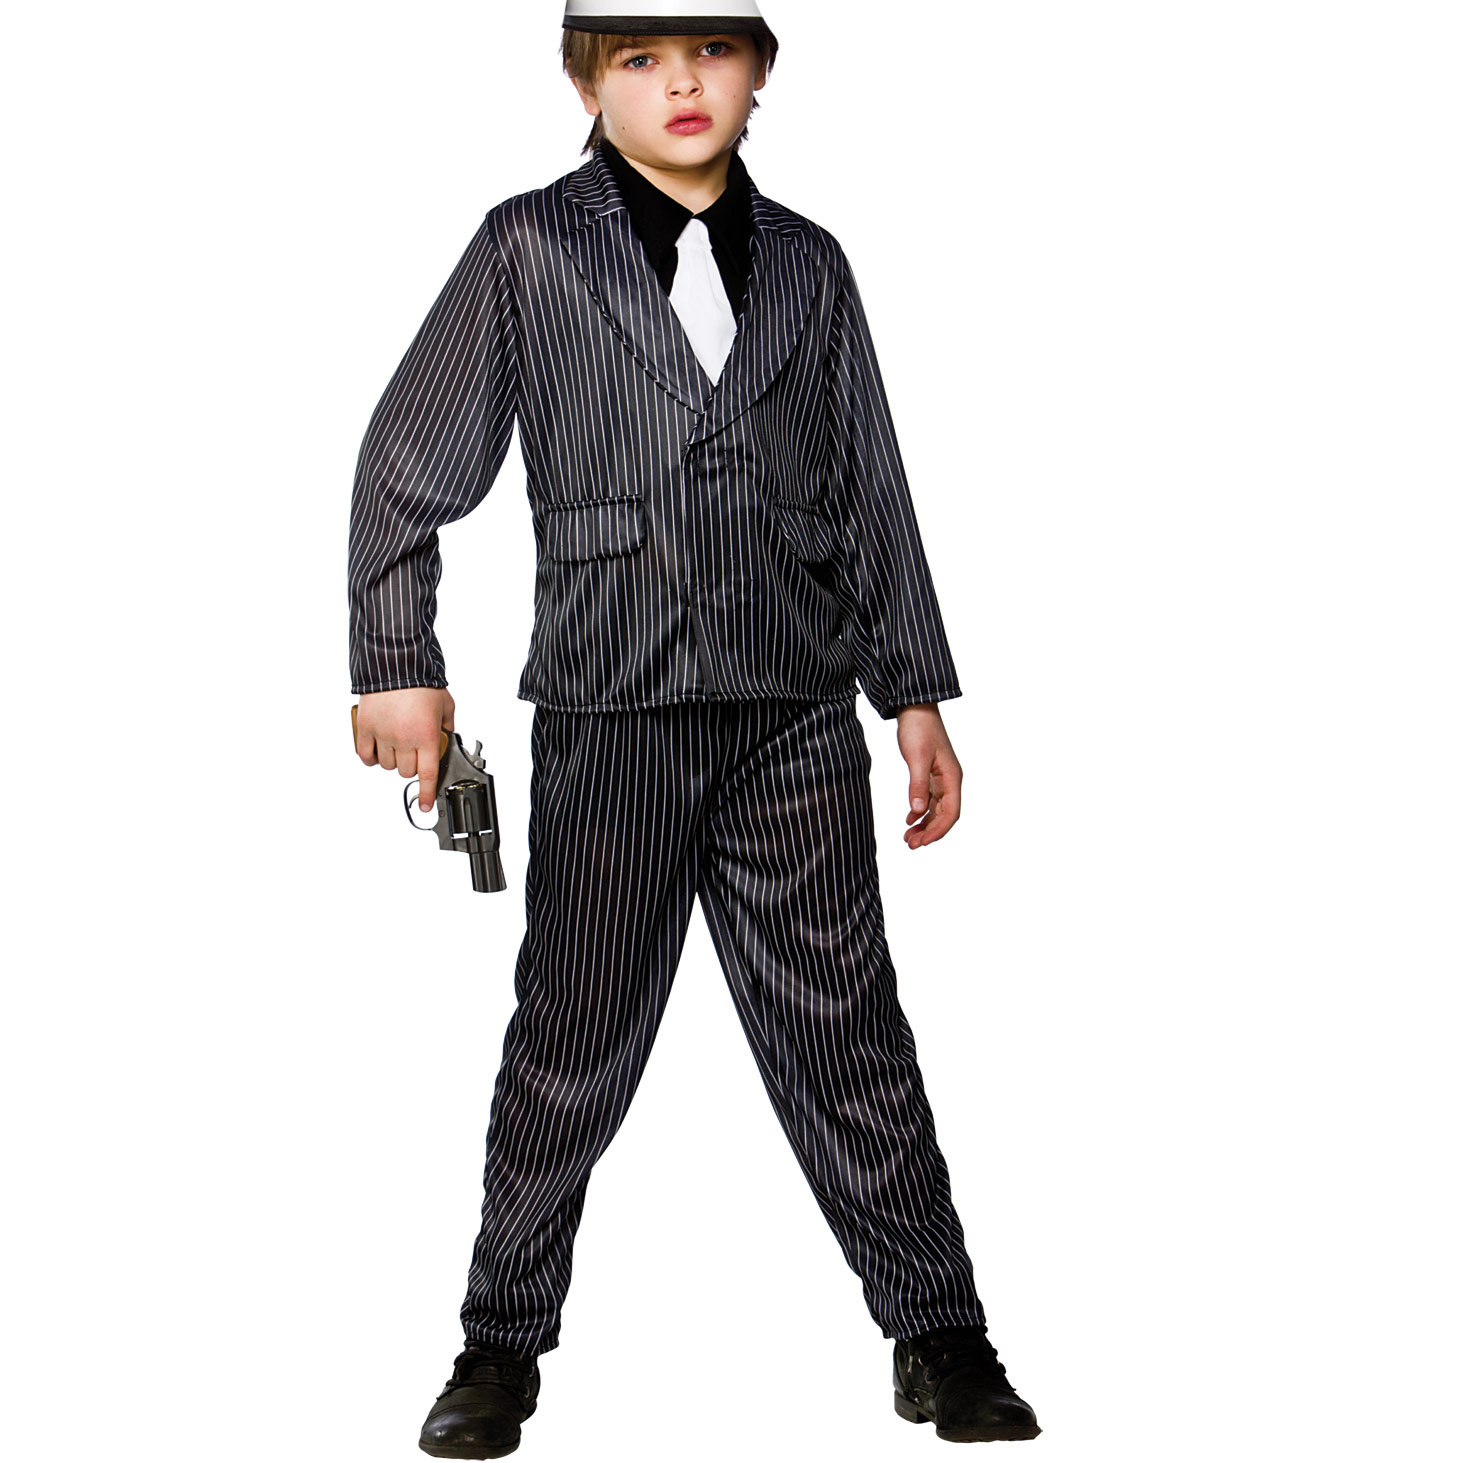 Boys Gangster Wise Guy Costume Mafia Child Play Party Halloween ...